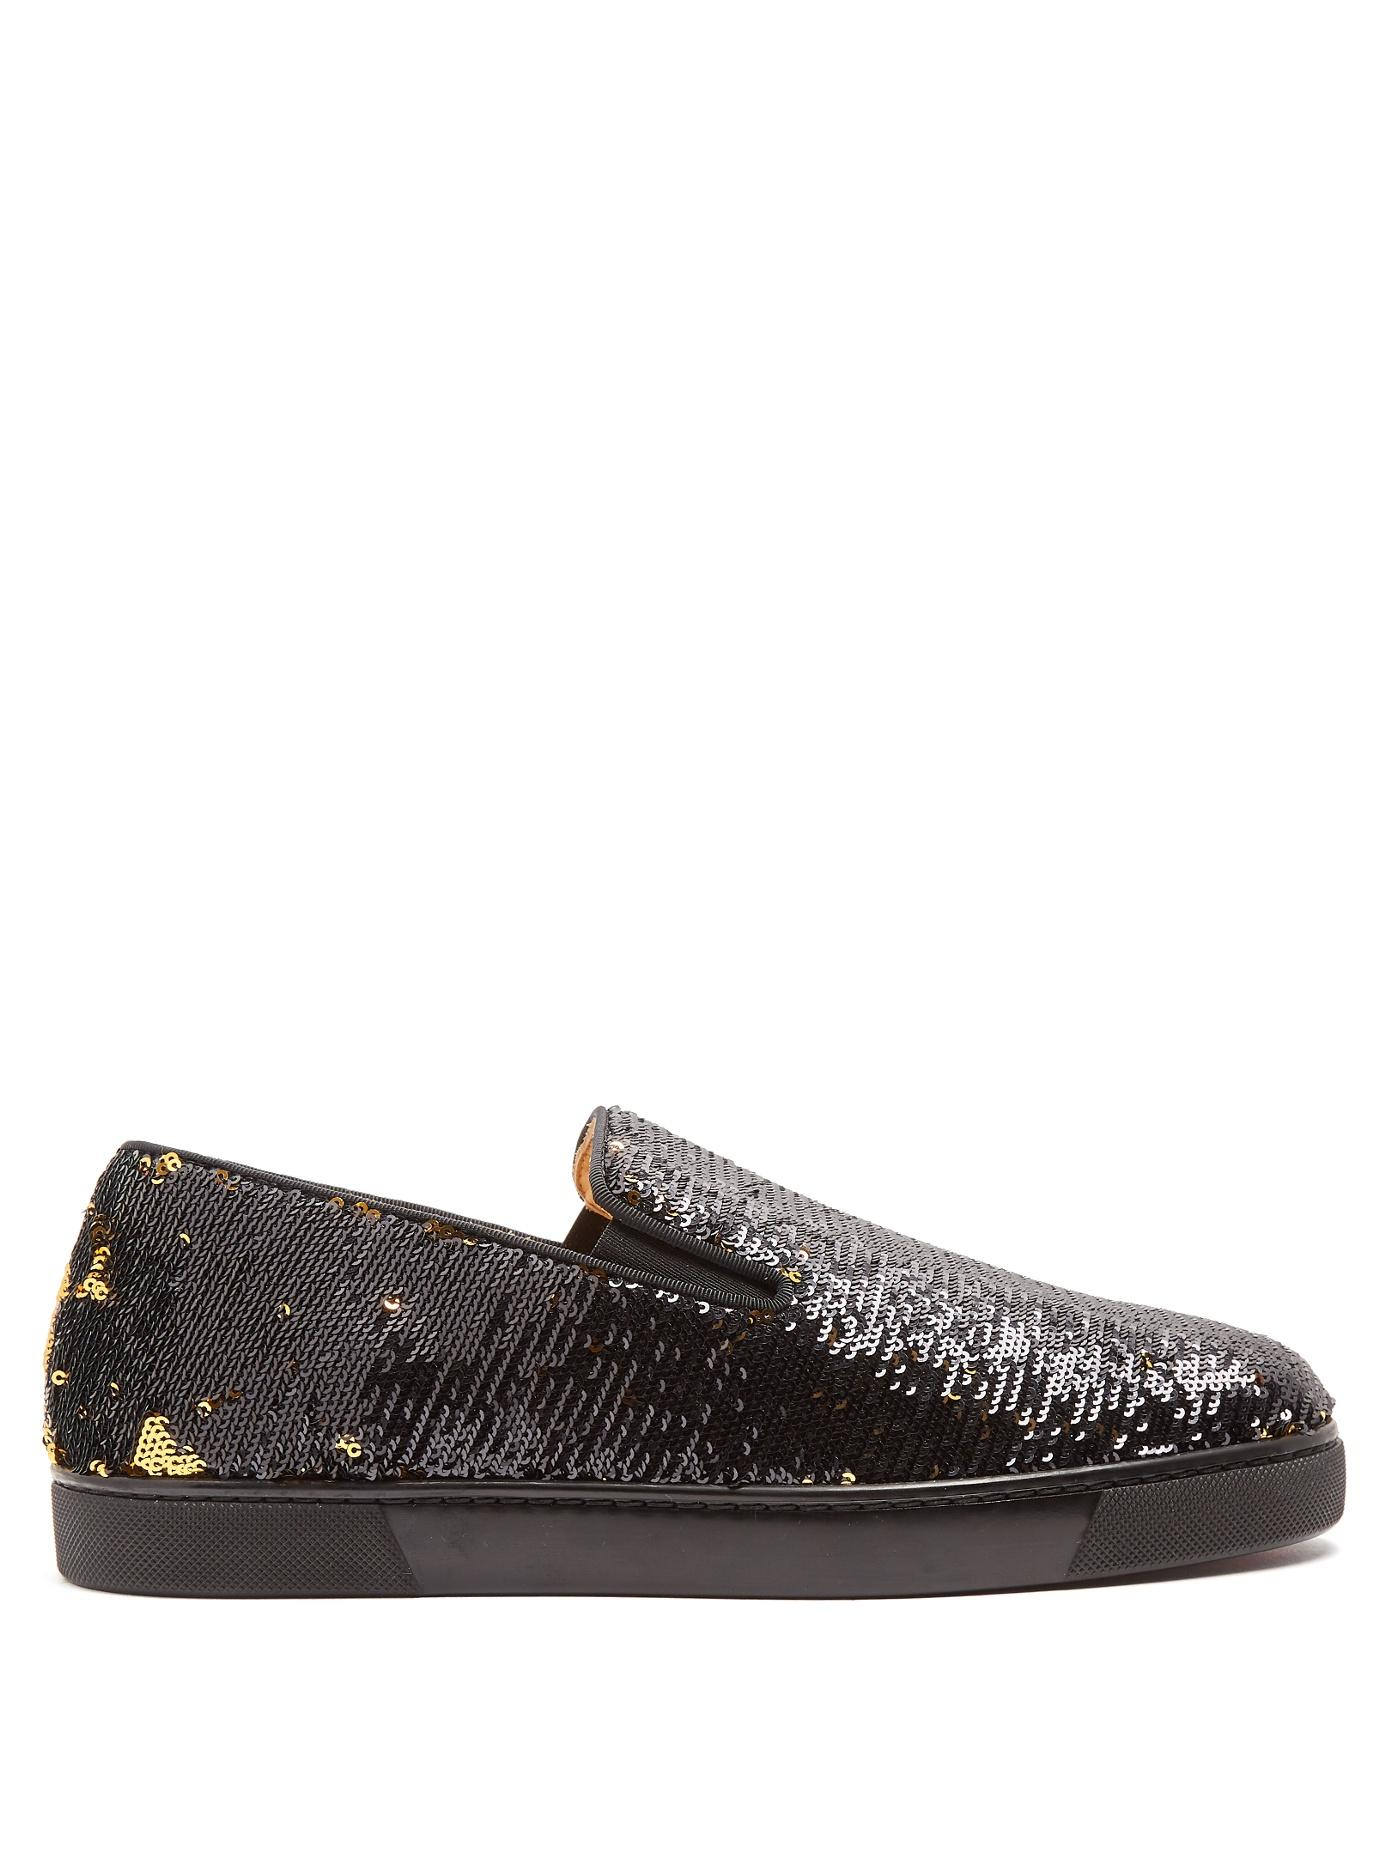 new styles f6769 6207f Boat Sequin-Embellished Slip-On Trainers in Black Gold